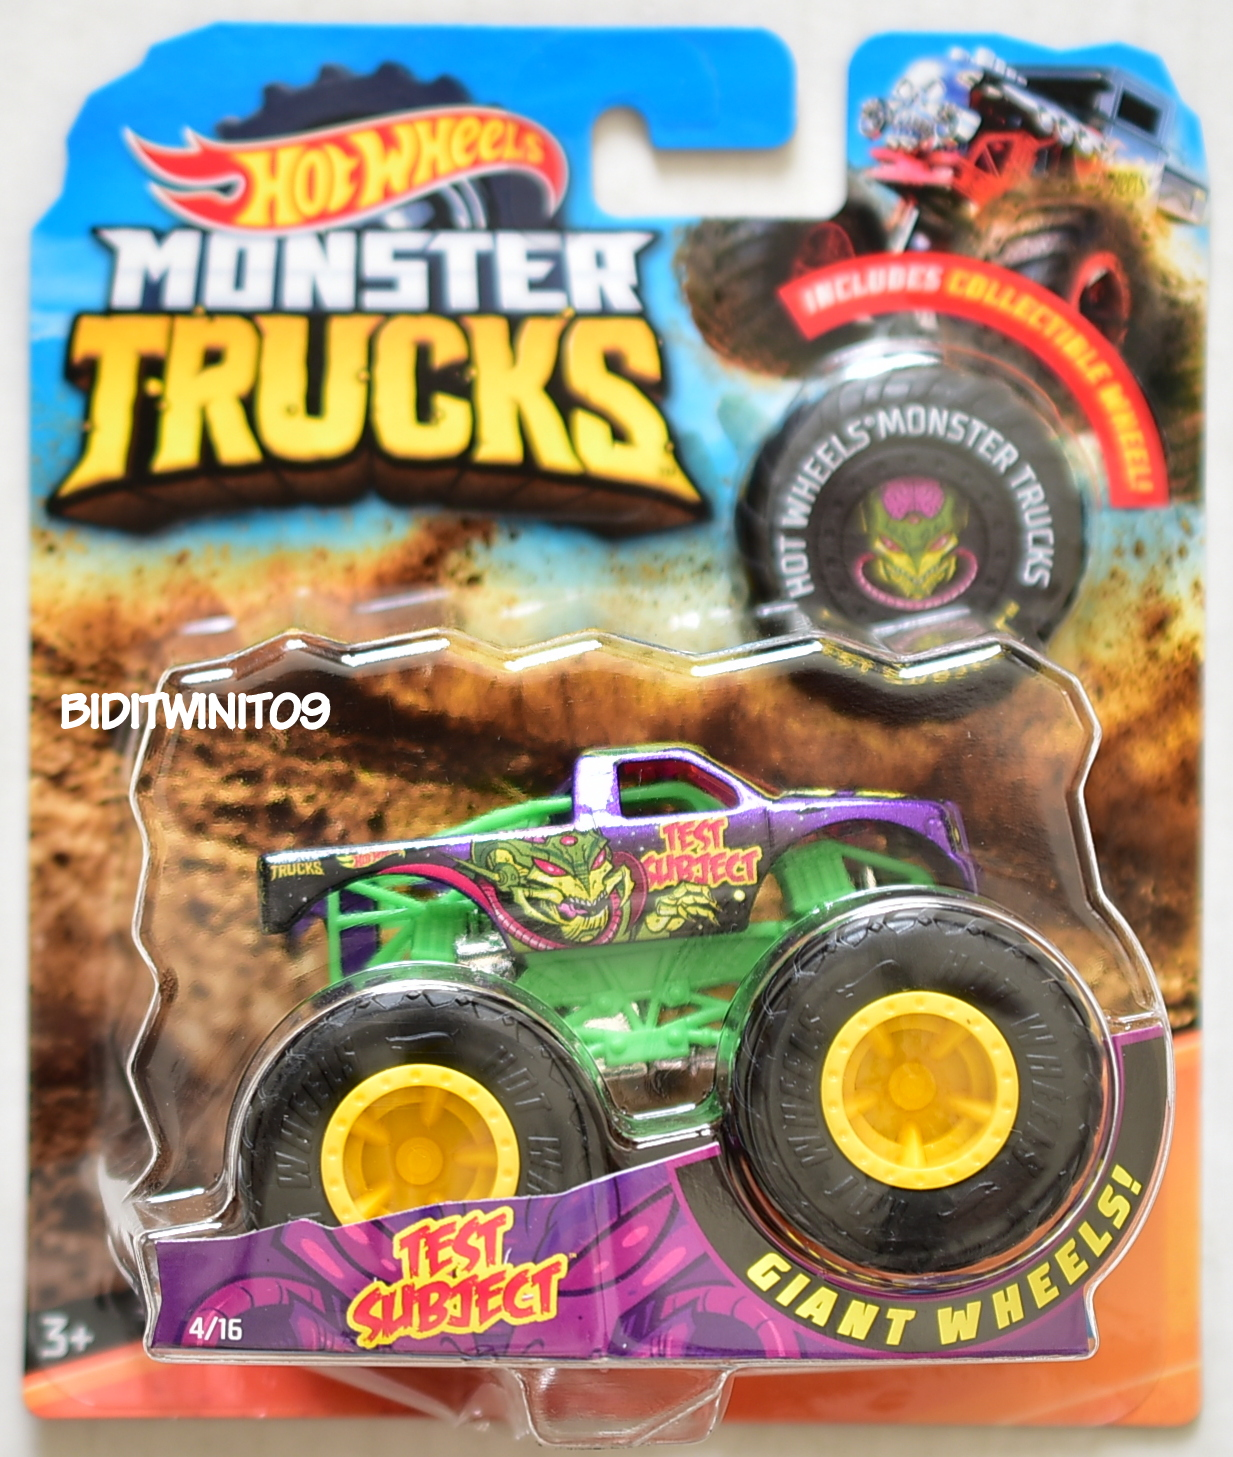 HOT WHEELS 2018 MONSTER TRUCKS GIANT WHEELS TEST SUBJECT #4/16